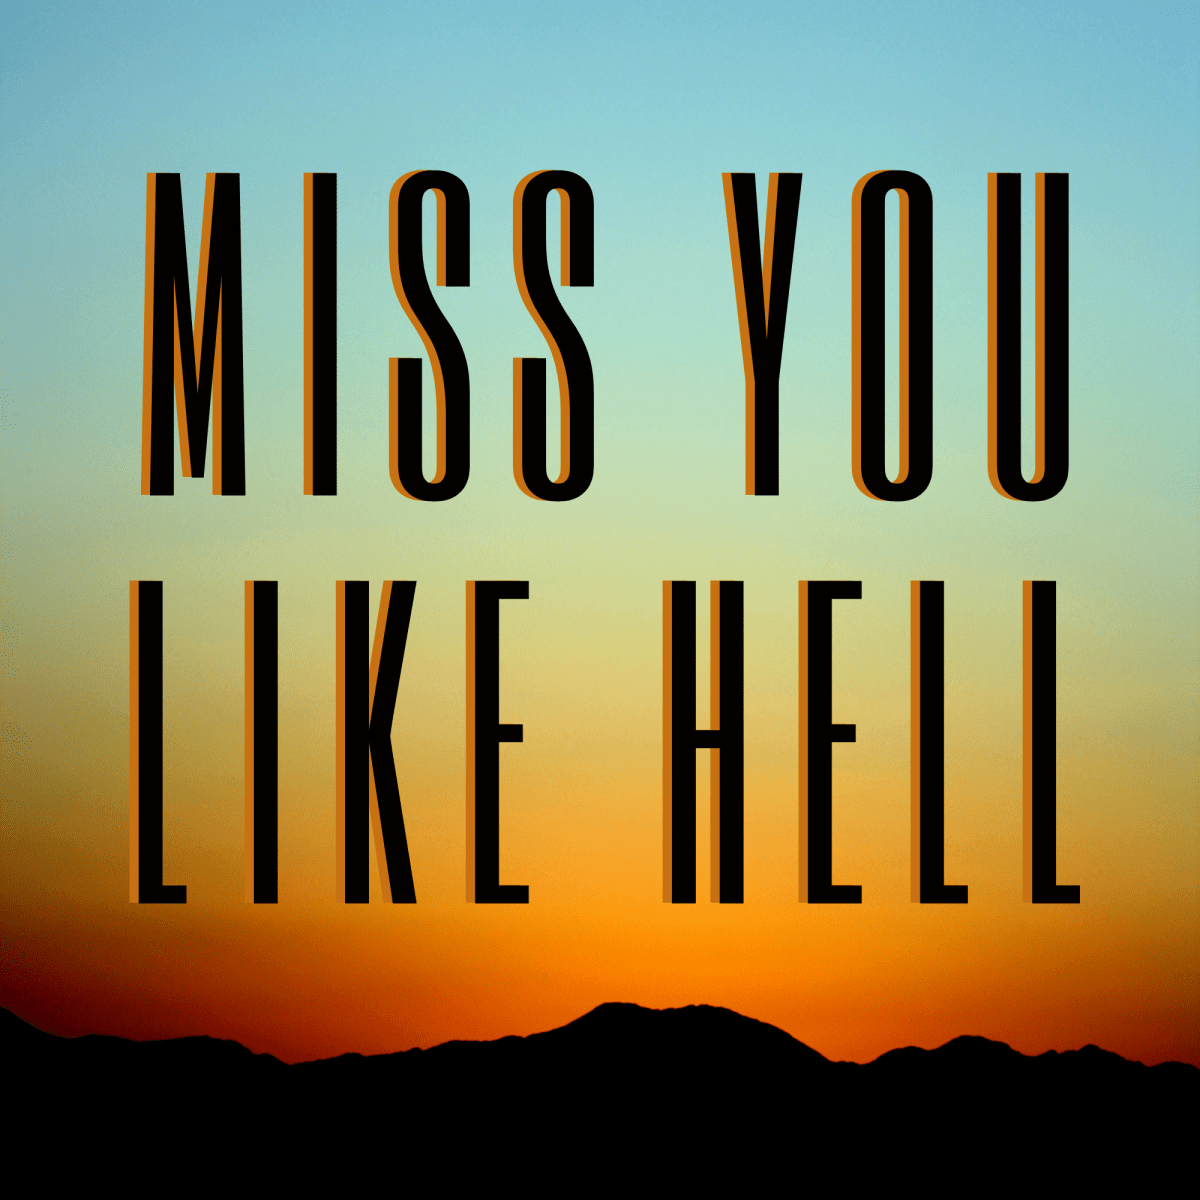 A promotional image for Miss You Like Hell.